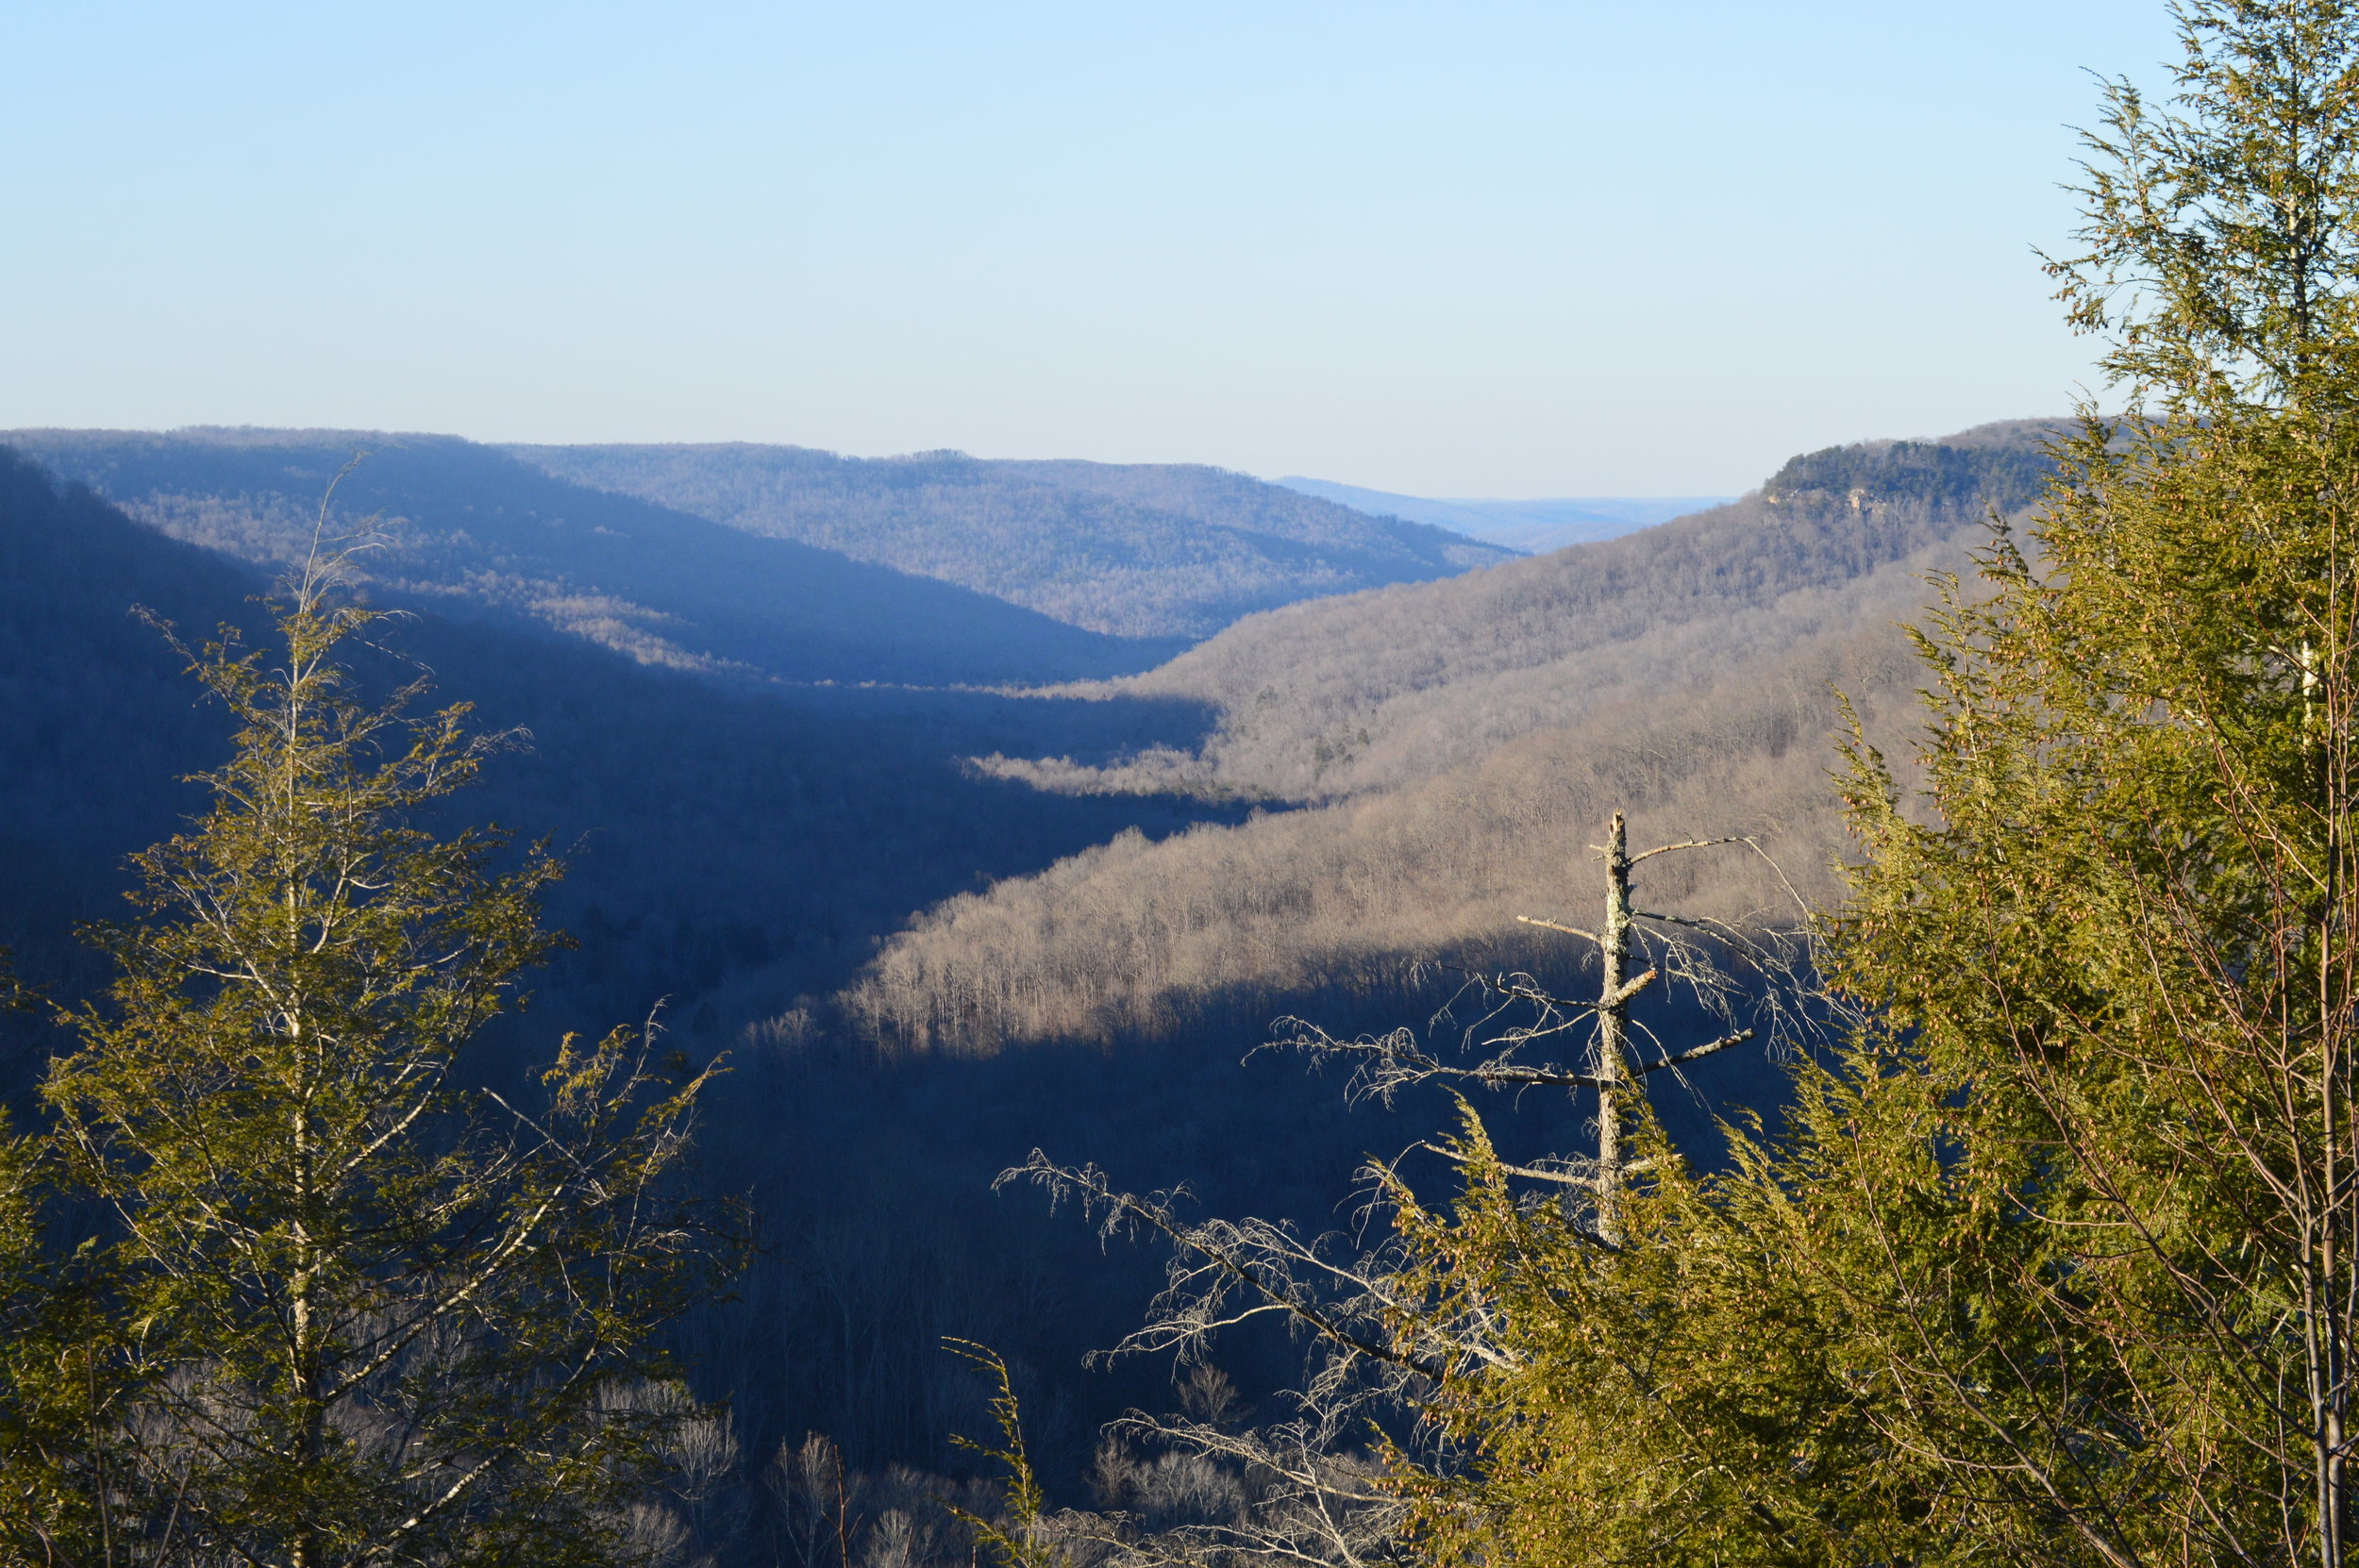 """The """"gulf"""" at Fall Creek Falls State Park is a seemingly endless expanse of wilderness, easily seen from overlooks along the park's scenic drive."""